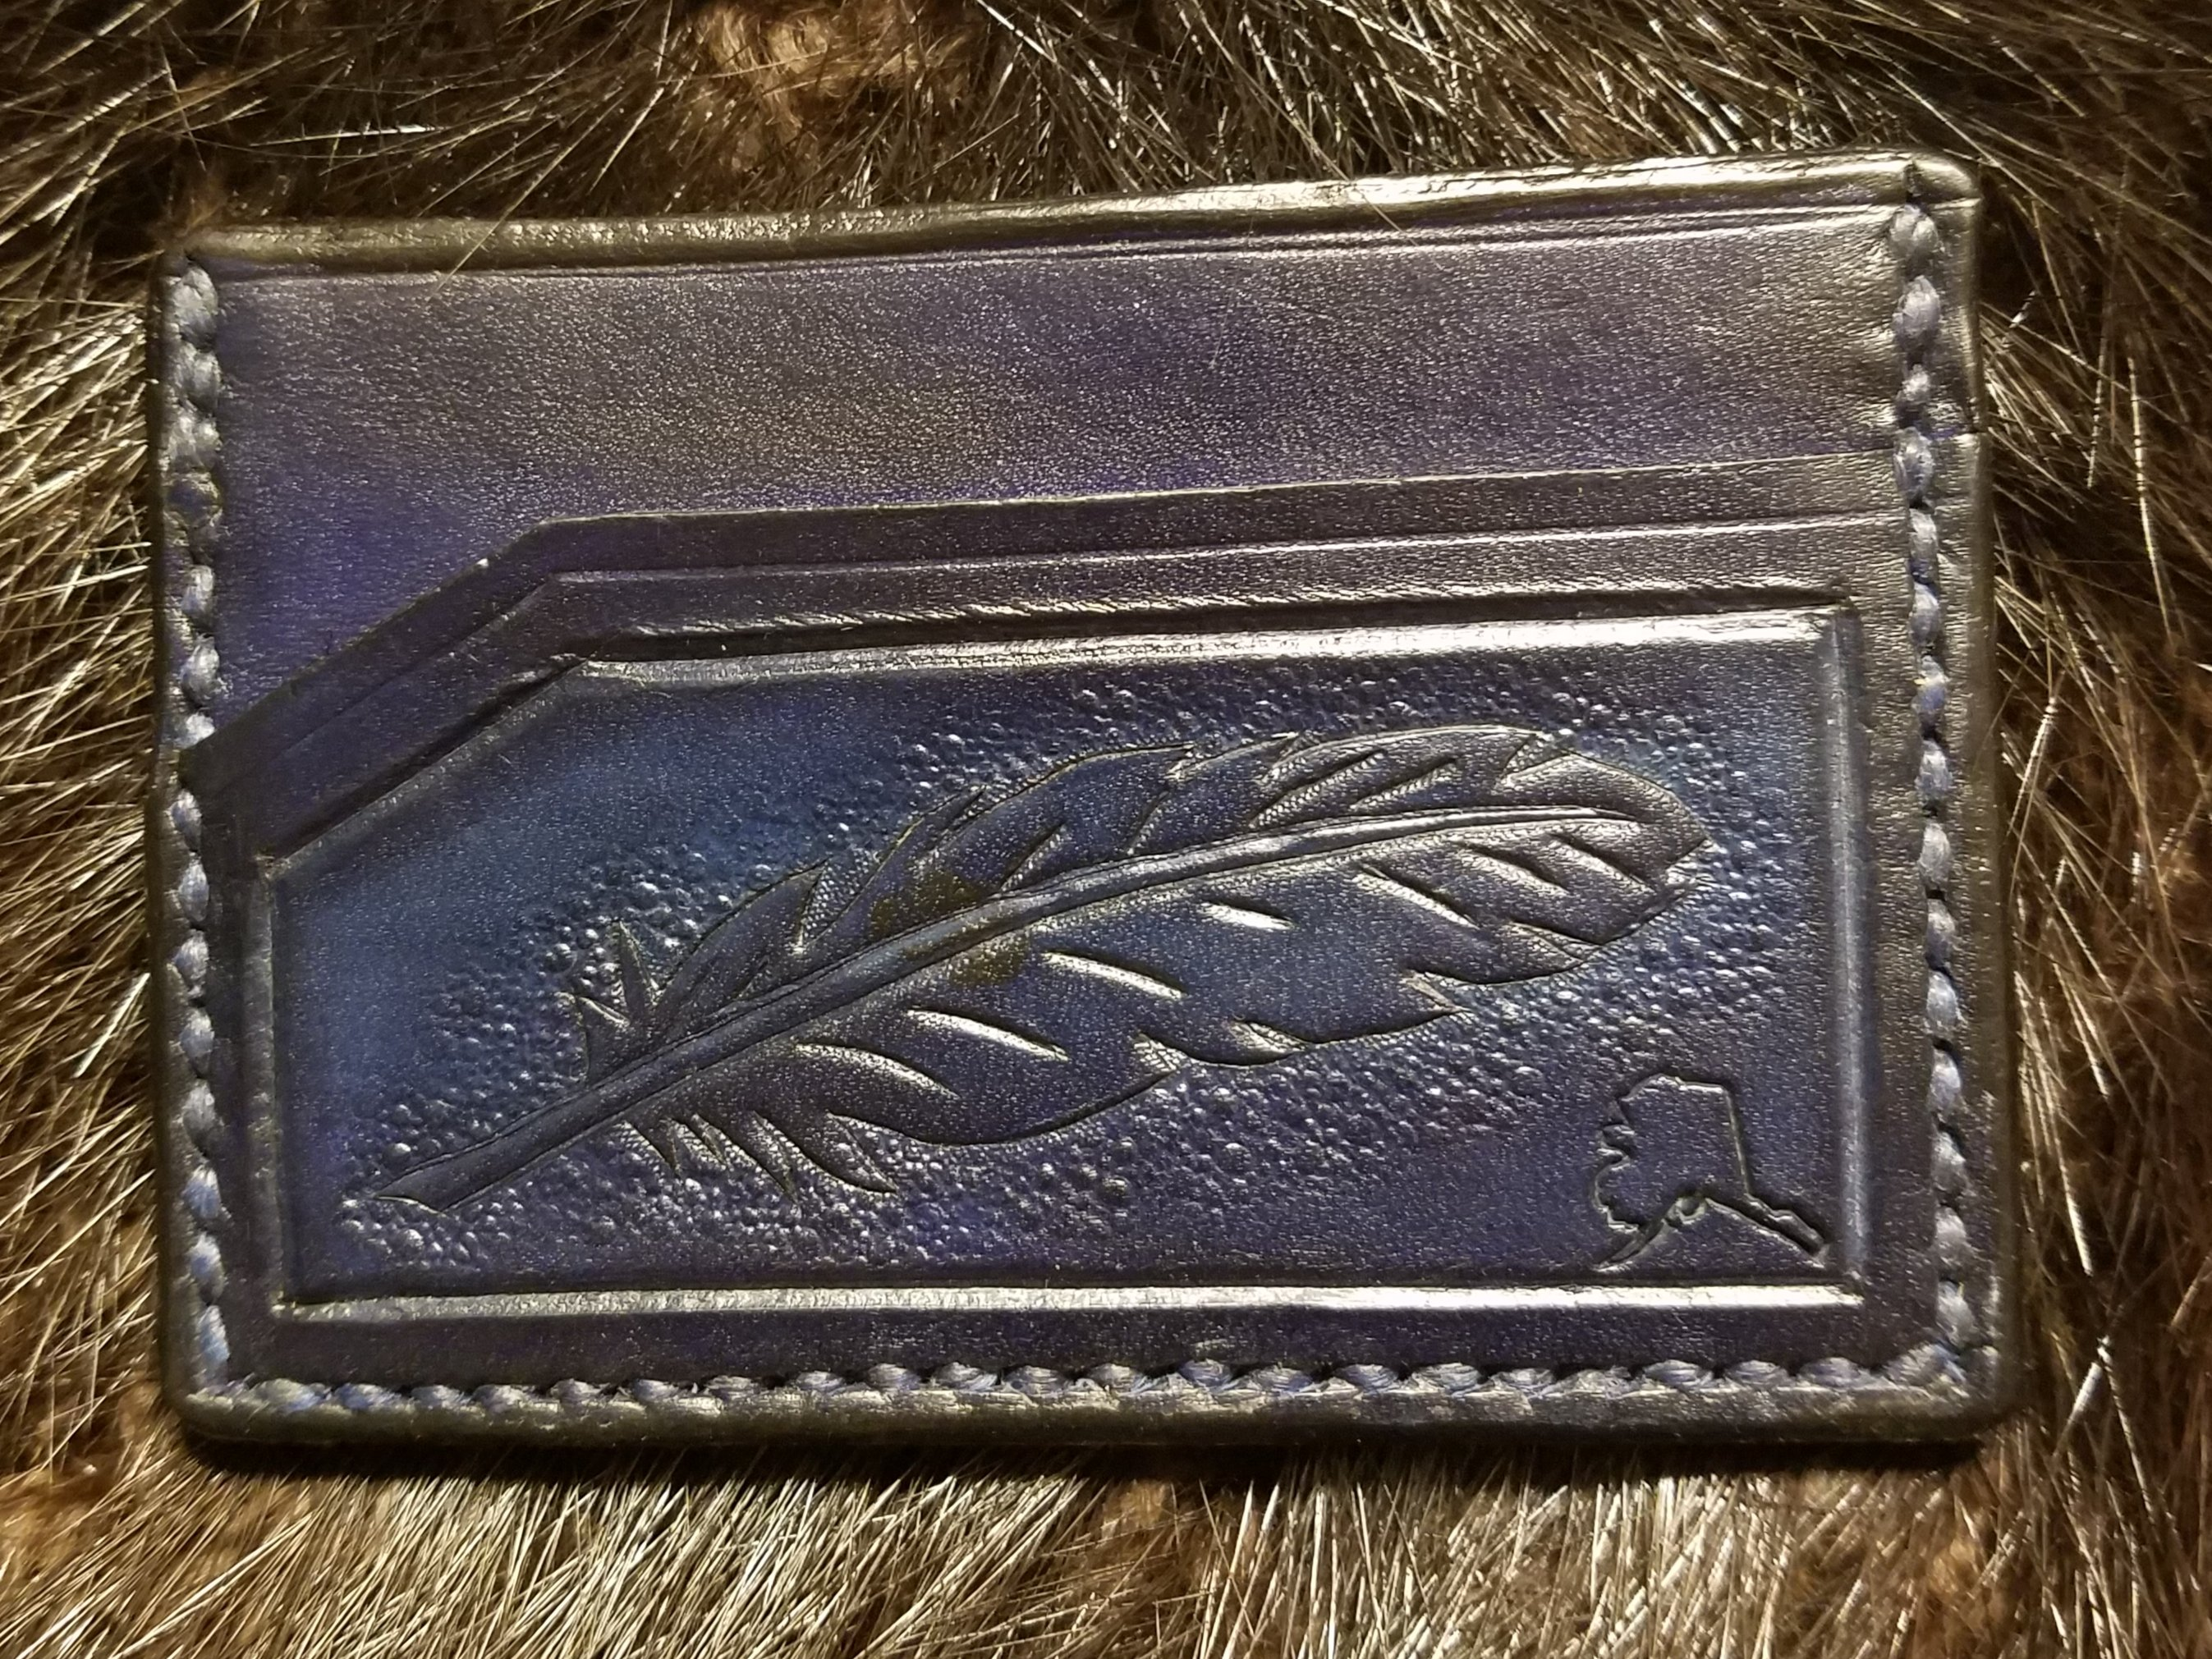 Feather, 3 pocket minimalist wallet, hand tooled and stitched,   $65.00